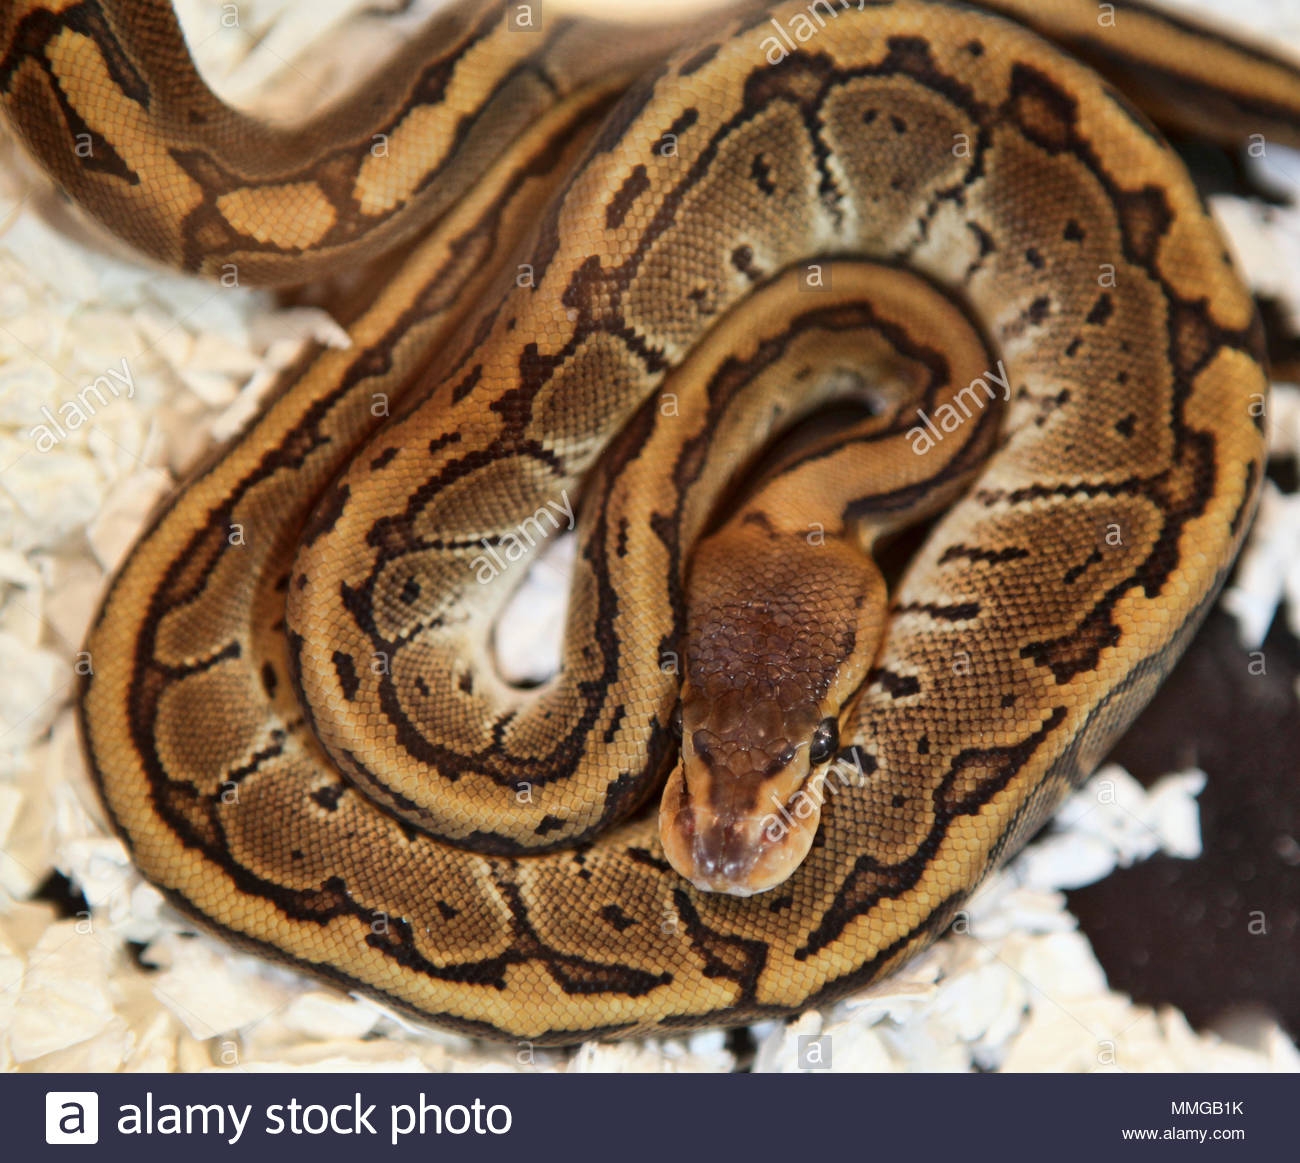 A Chocolate pin snake at an exotic reptile breeders expo Stock Photo